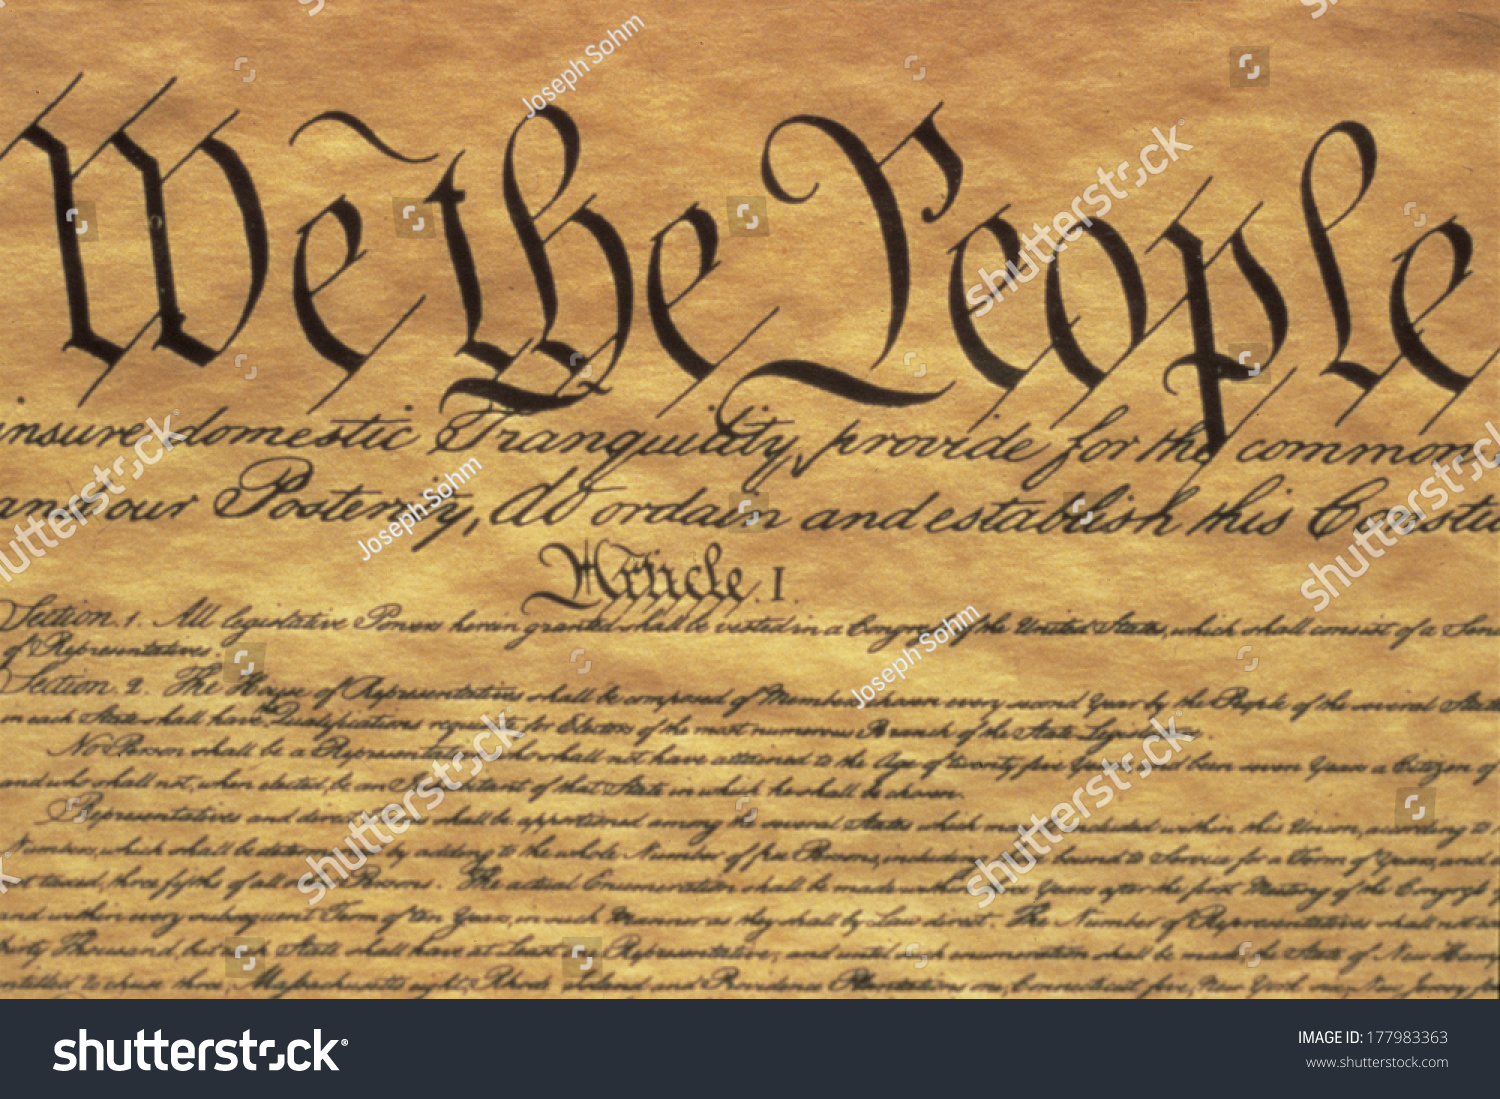 United States Constitution With Its Preamble We The